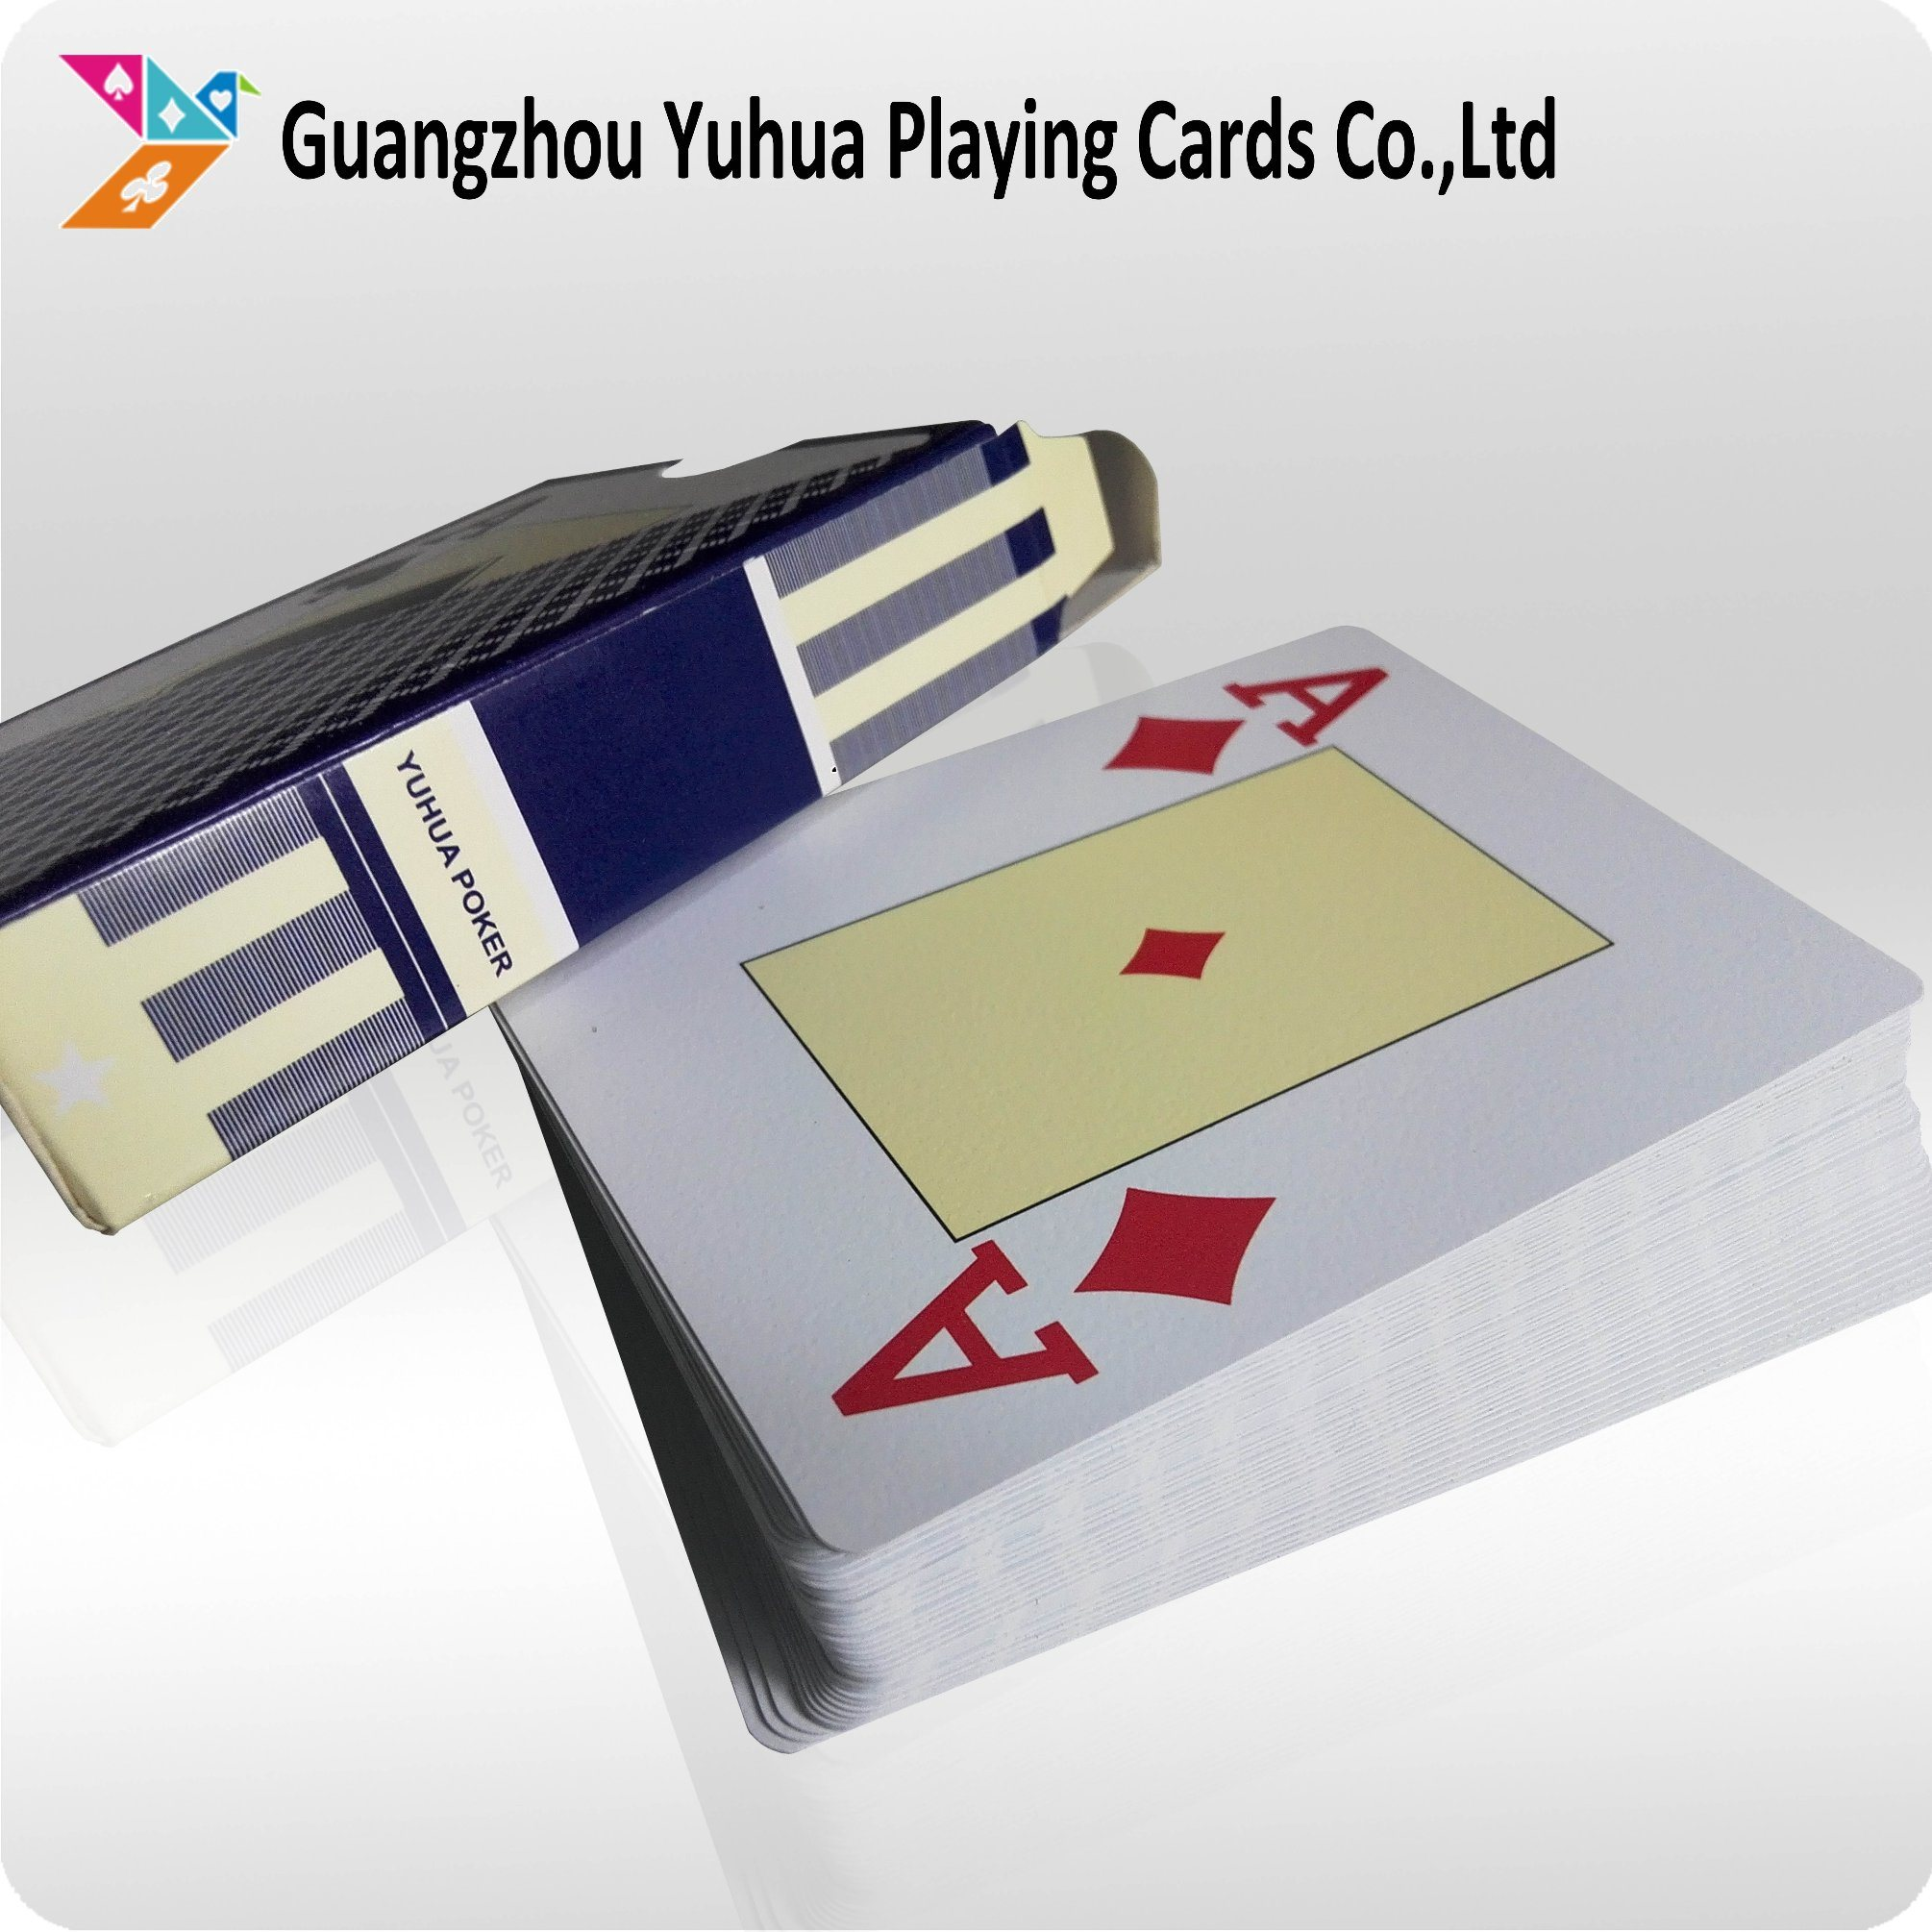 3 pack of plastic playing cards - Buy 3 pack of plastic